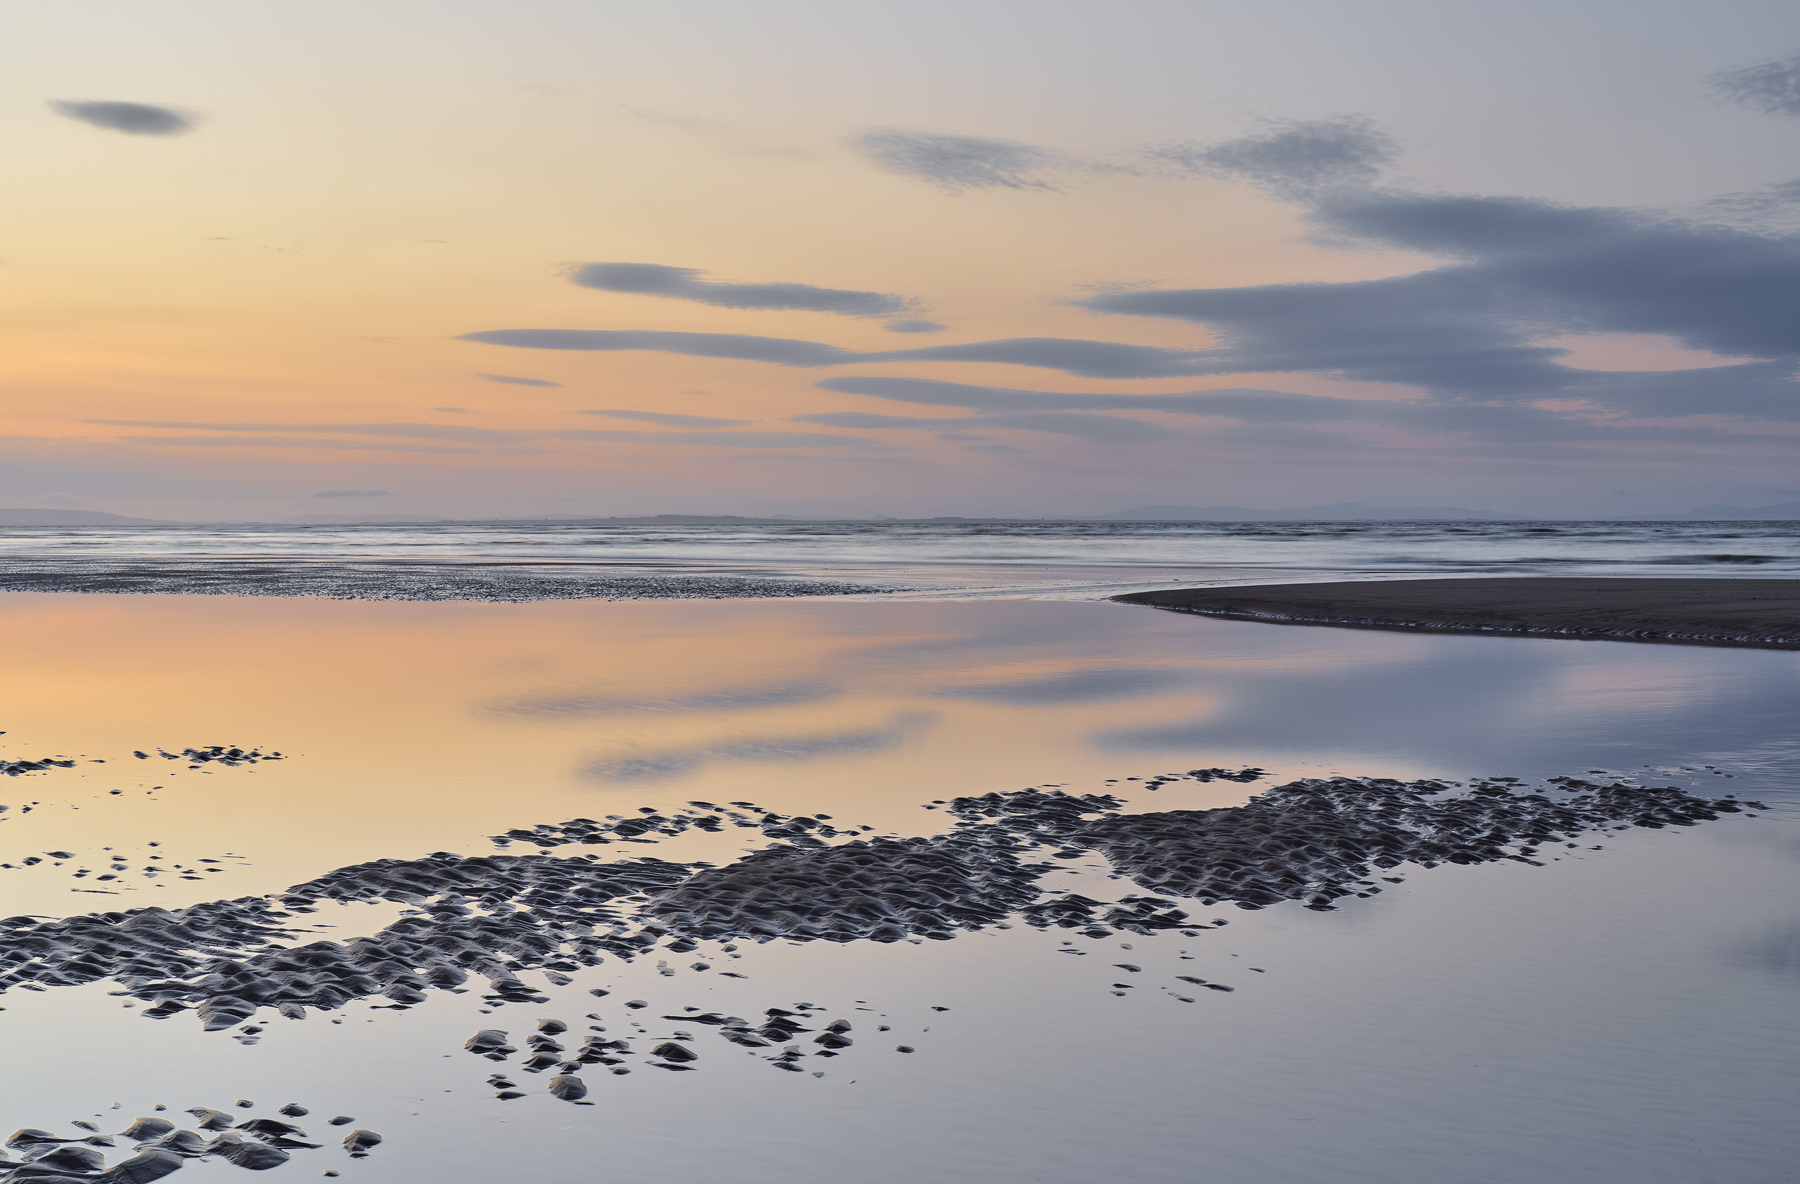 Soft glowing twilight colours of dusky orange and blue reflected with the clouds in a thin skin of smooth and unruffled water at the tide margin